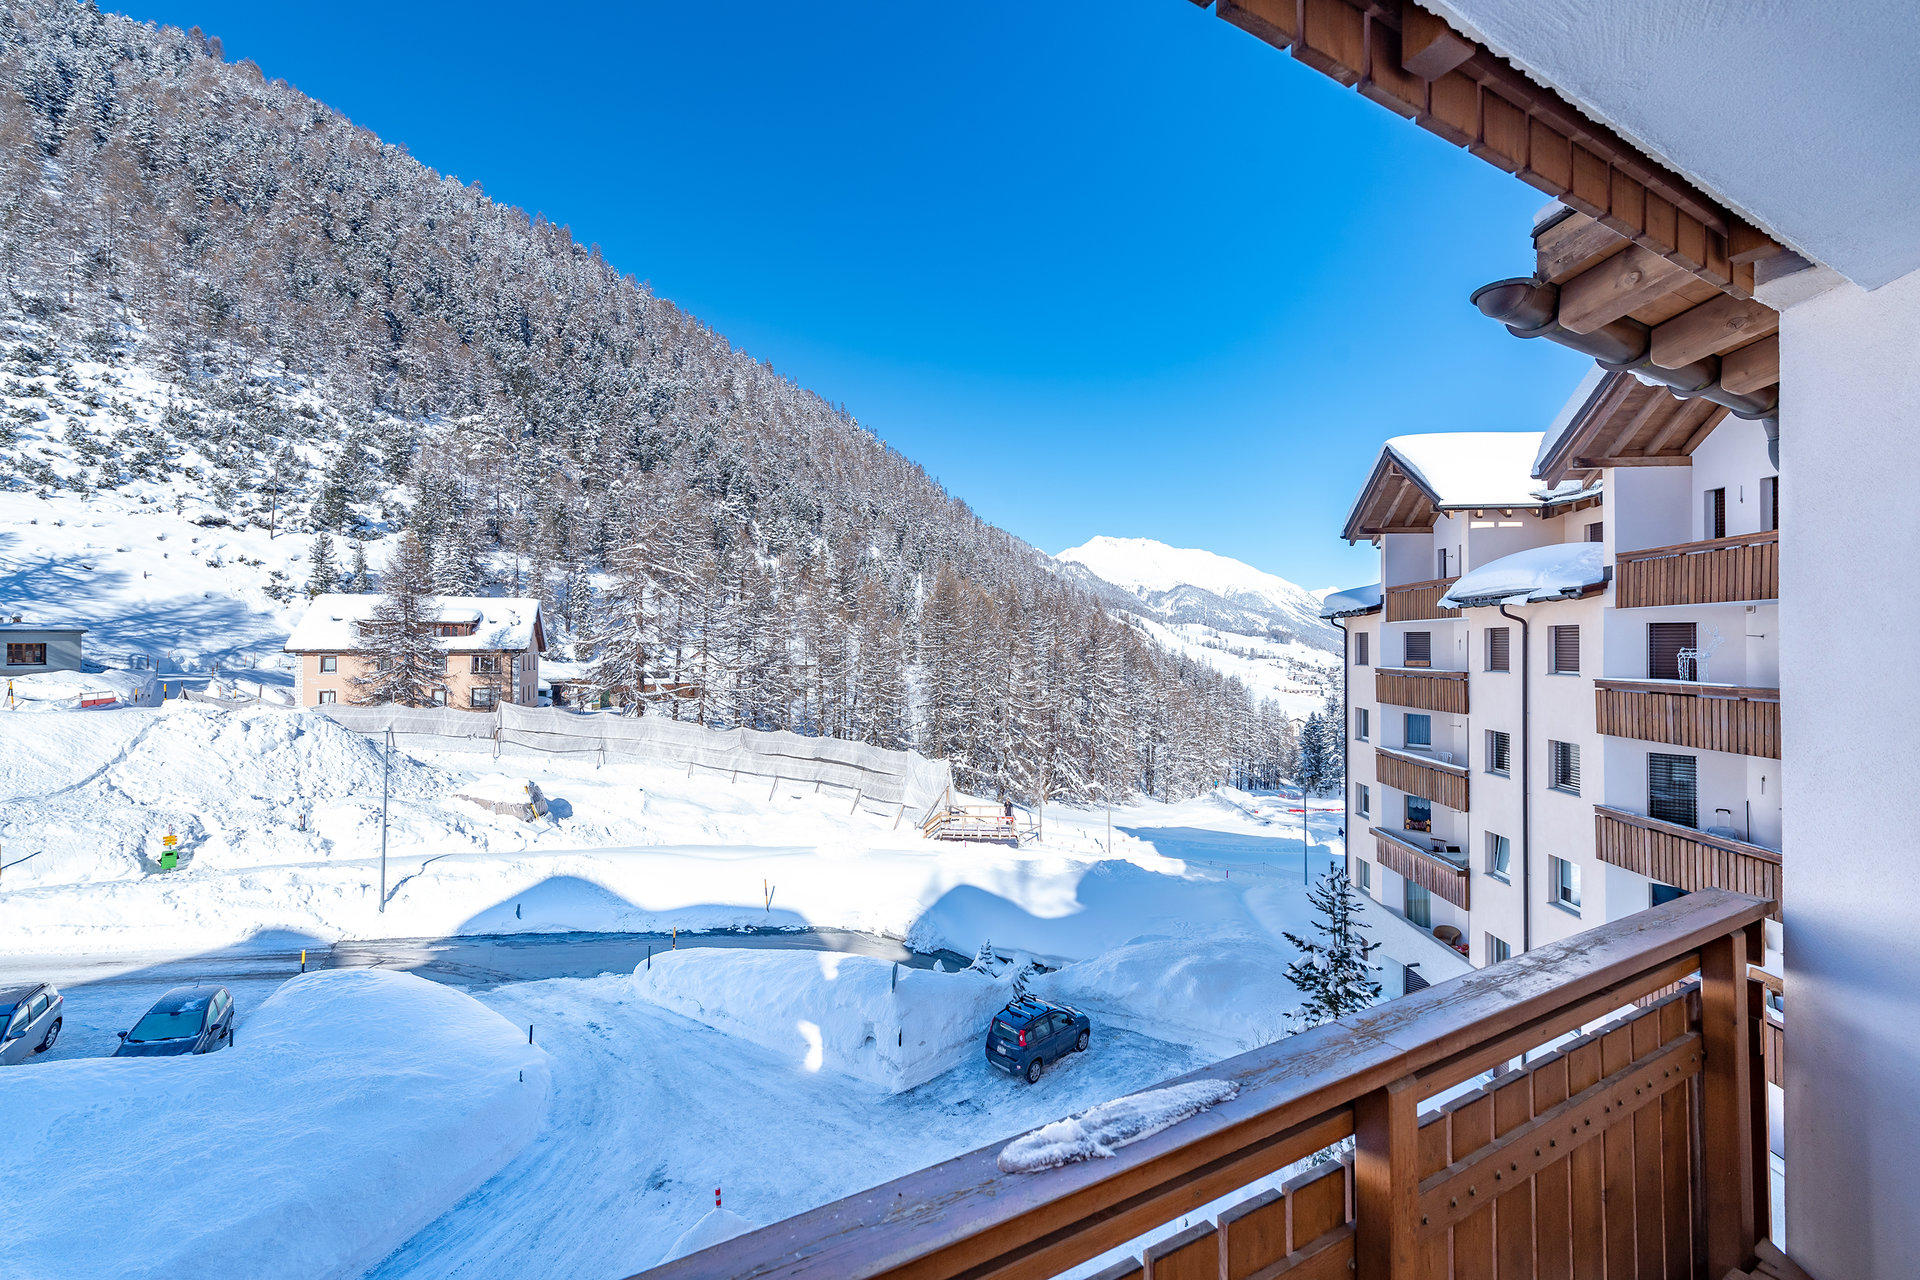 Big apartament for sale in Sankt Moritz, Switzerland- land